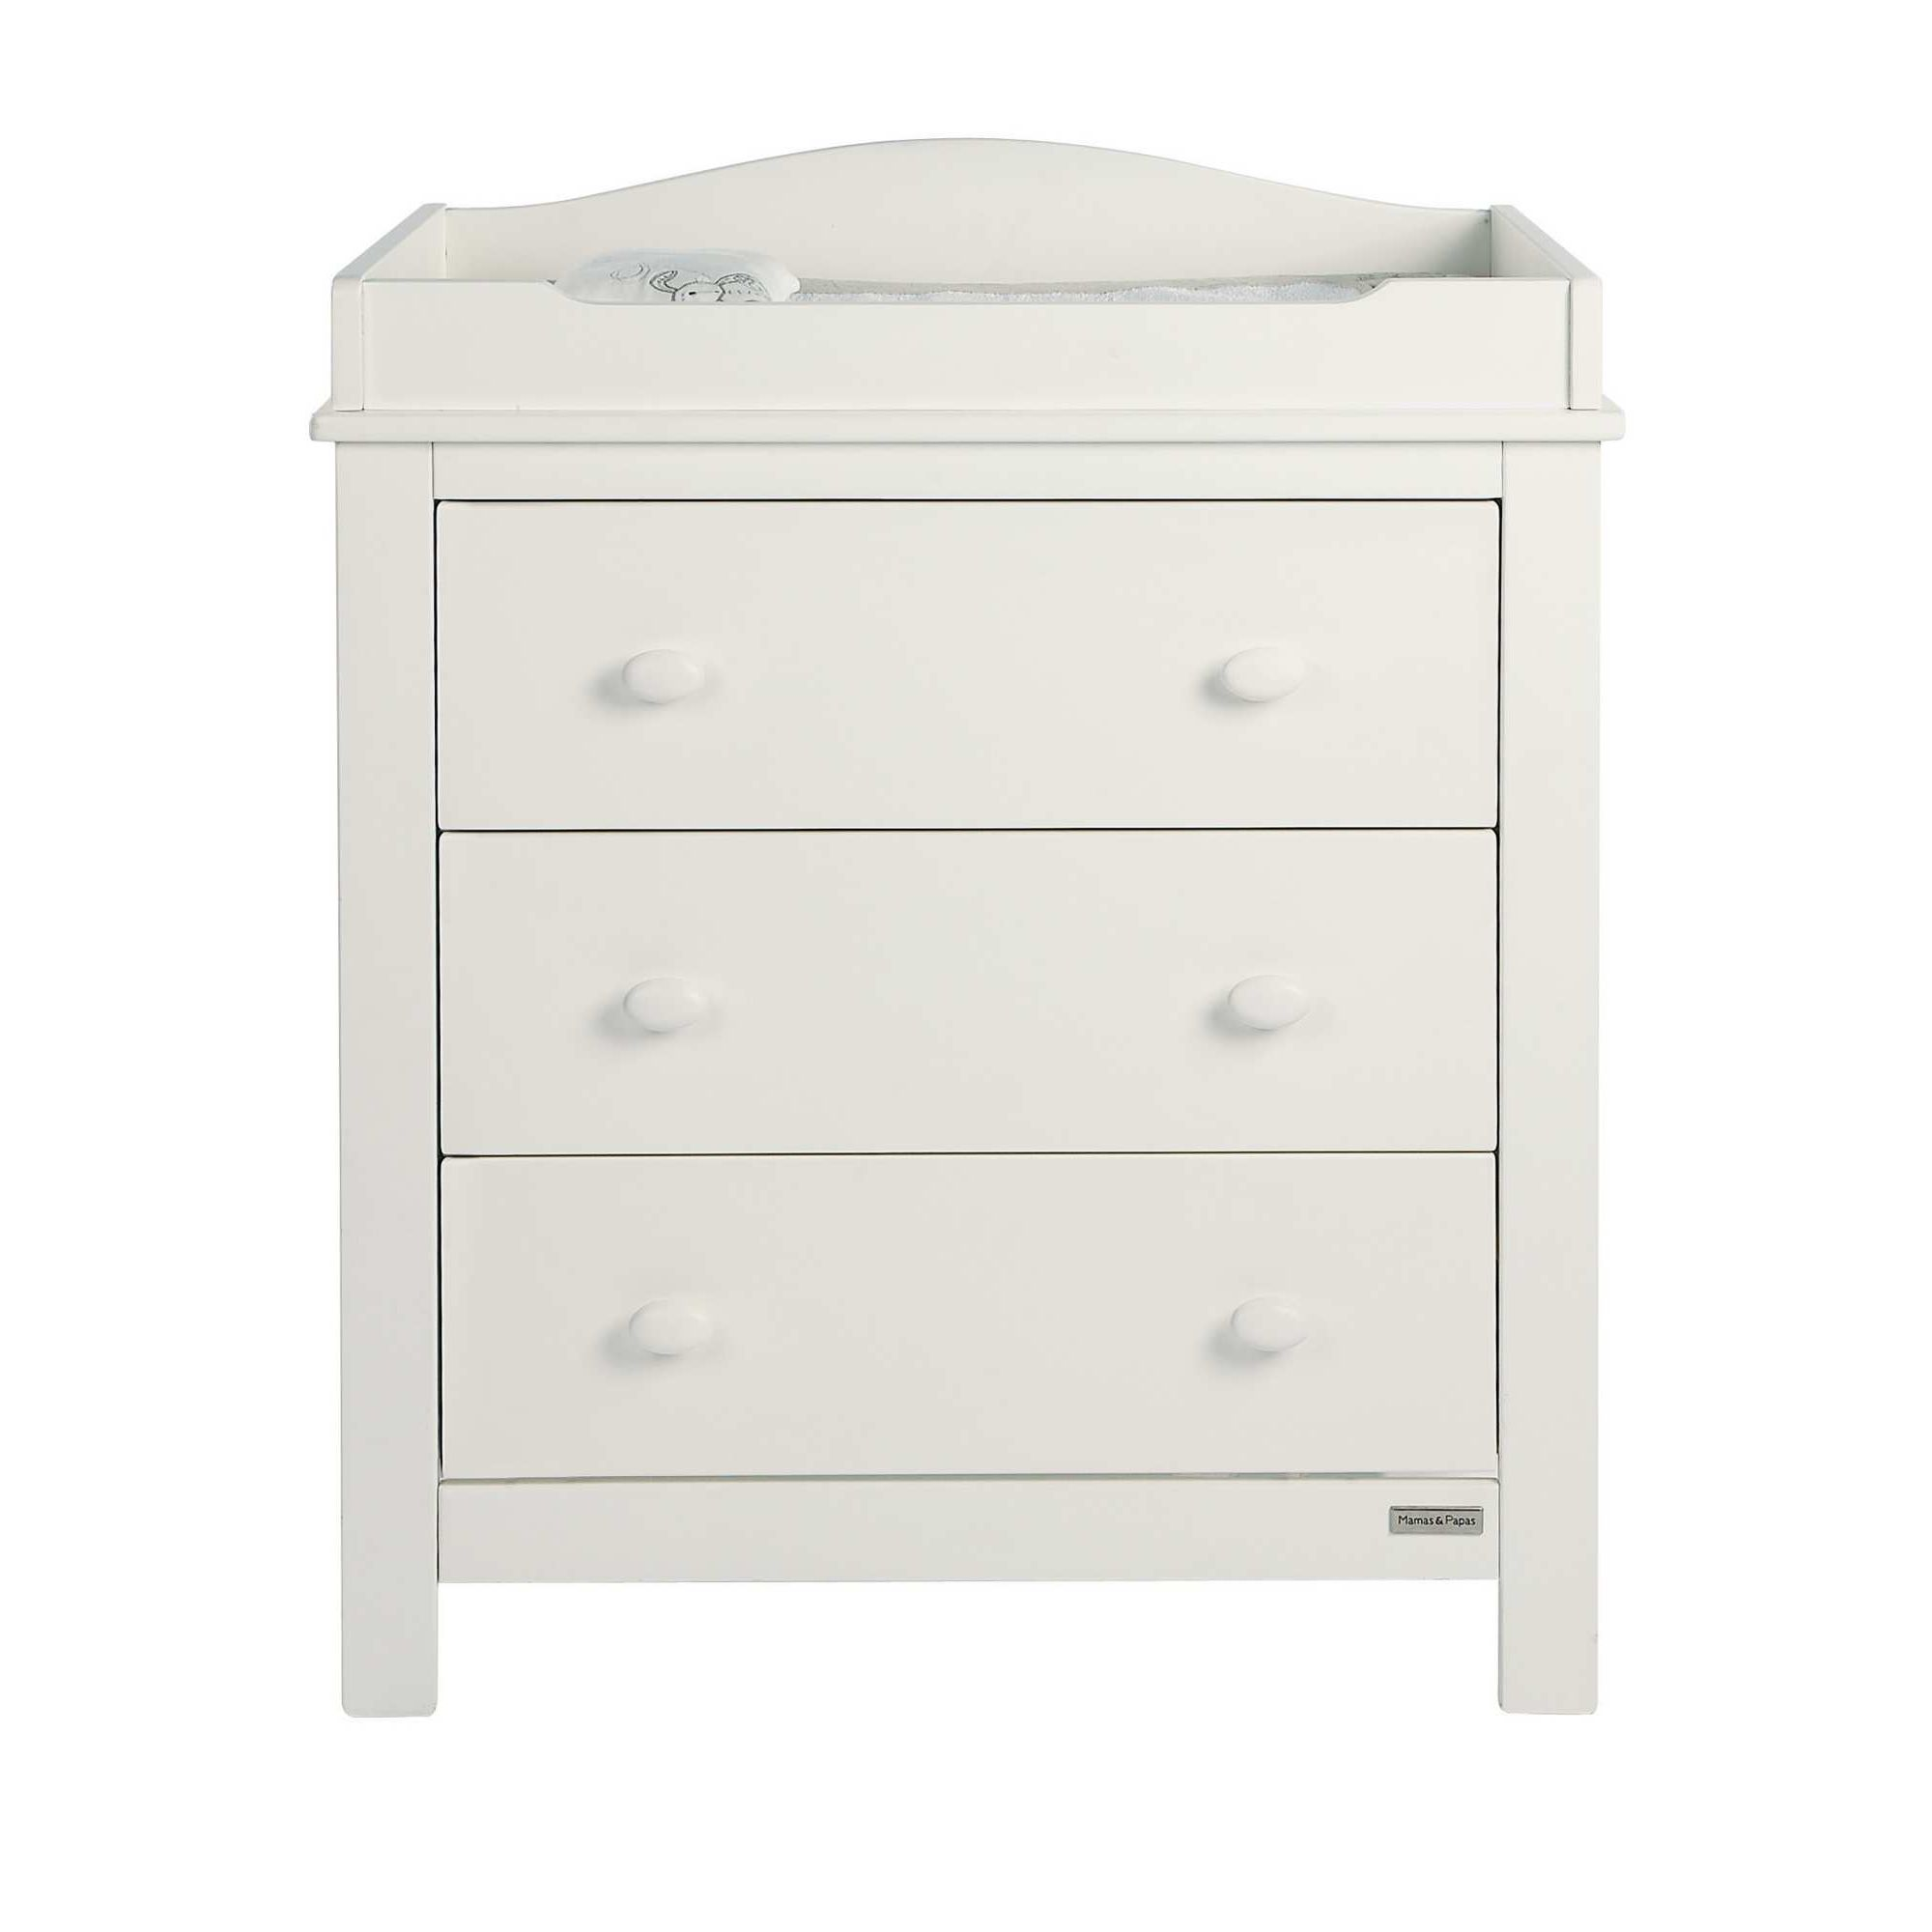 Mamas & Papas - Willow Dresser with changer - White at Tesco Direct